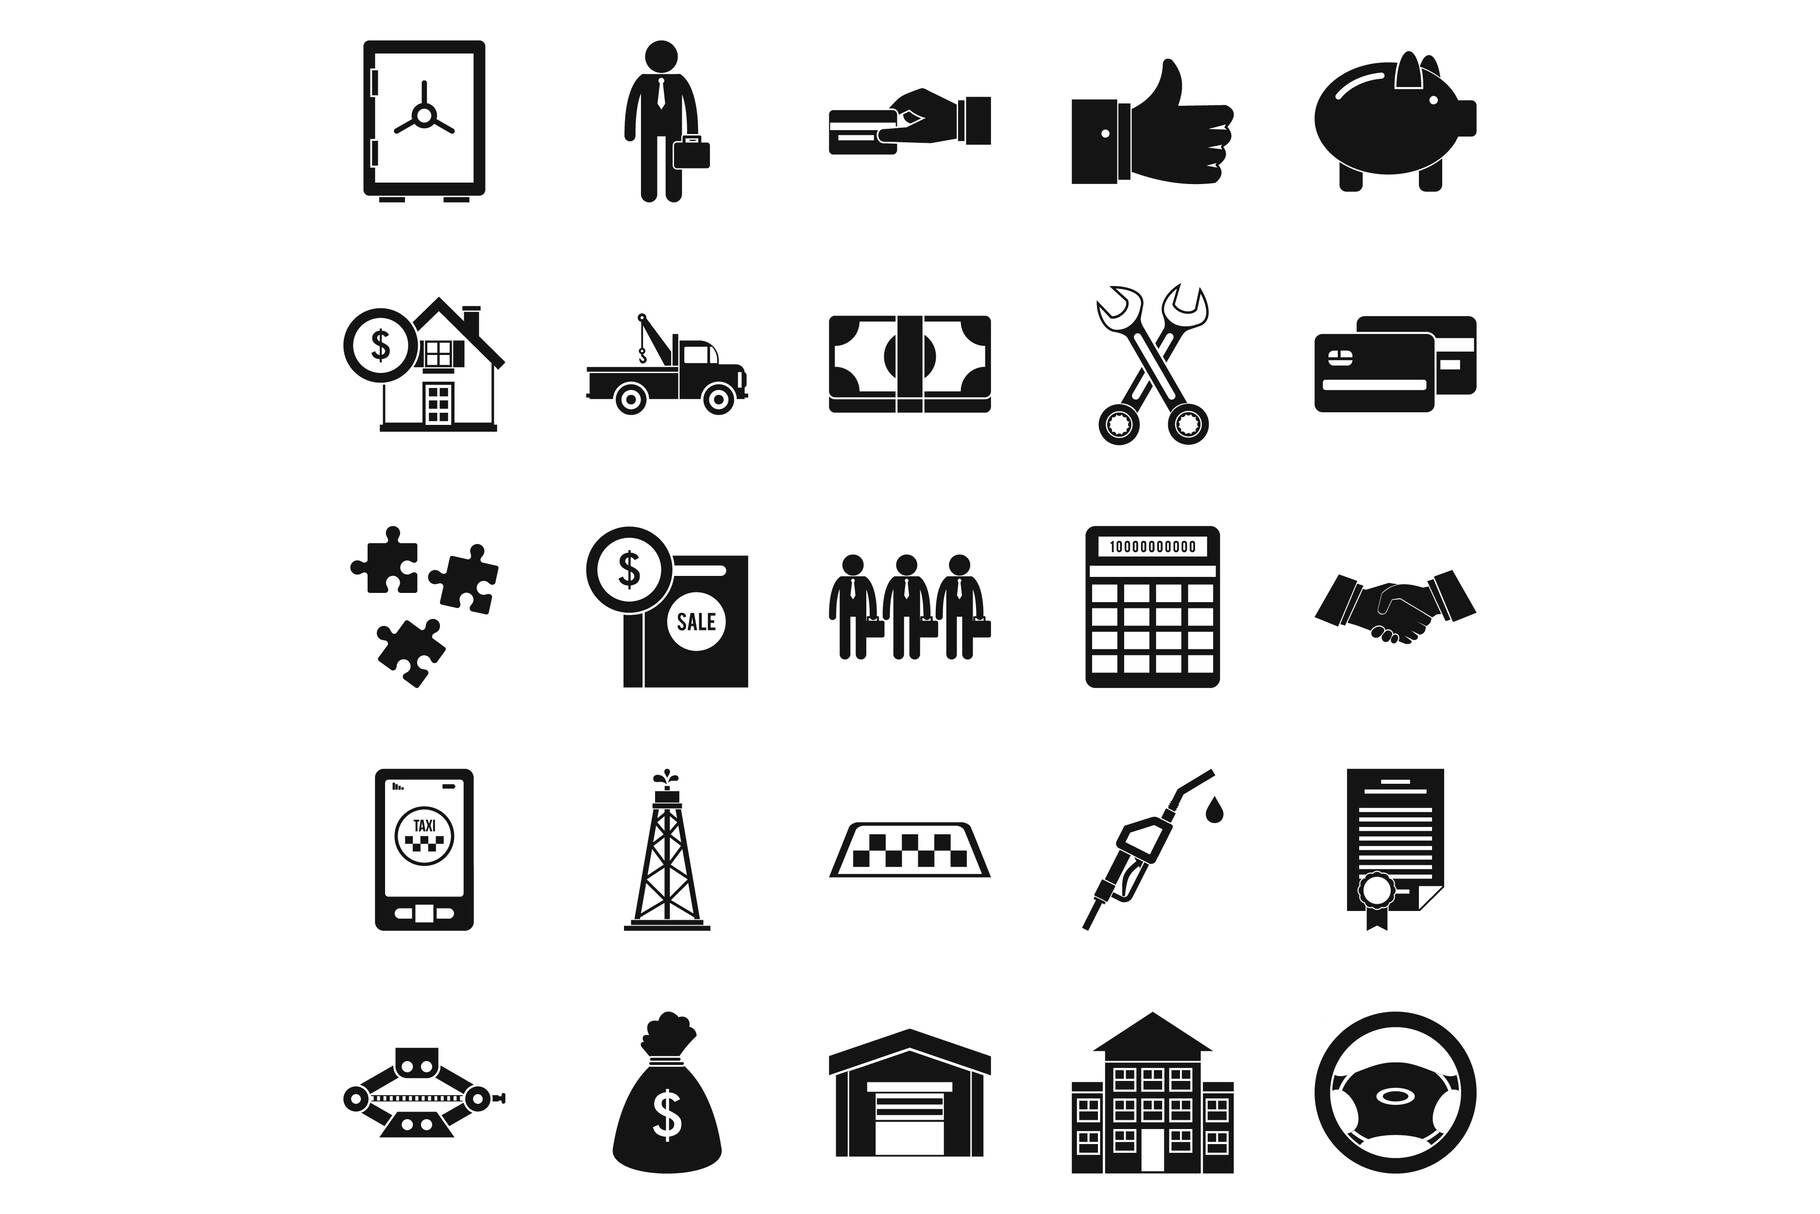 Merchant icons set, simple style example image 1